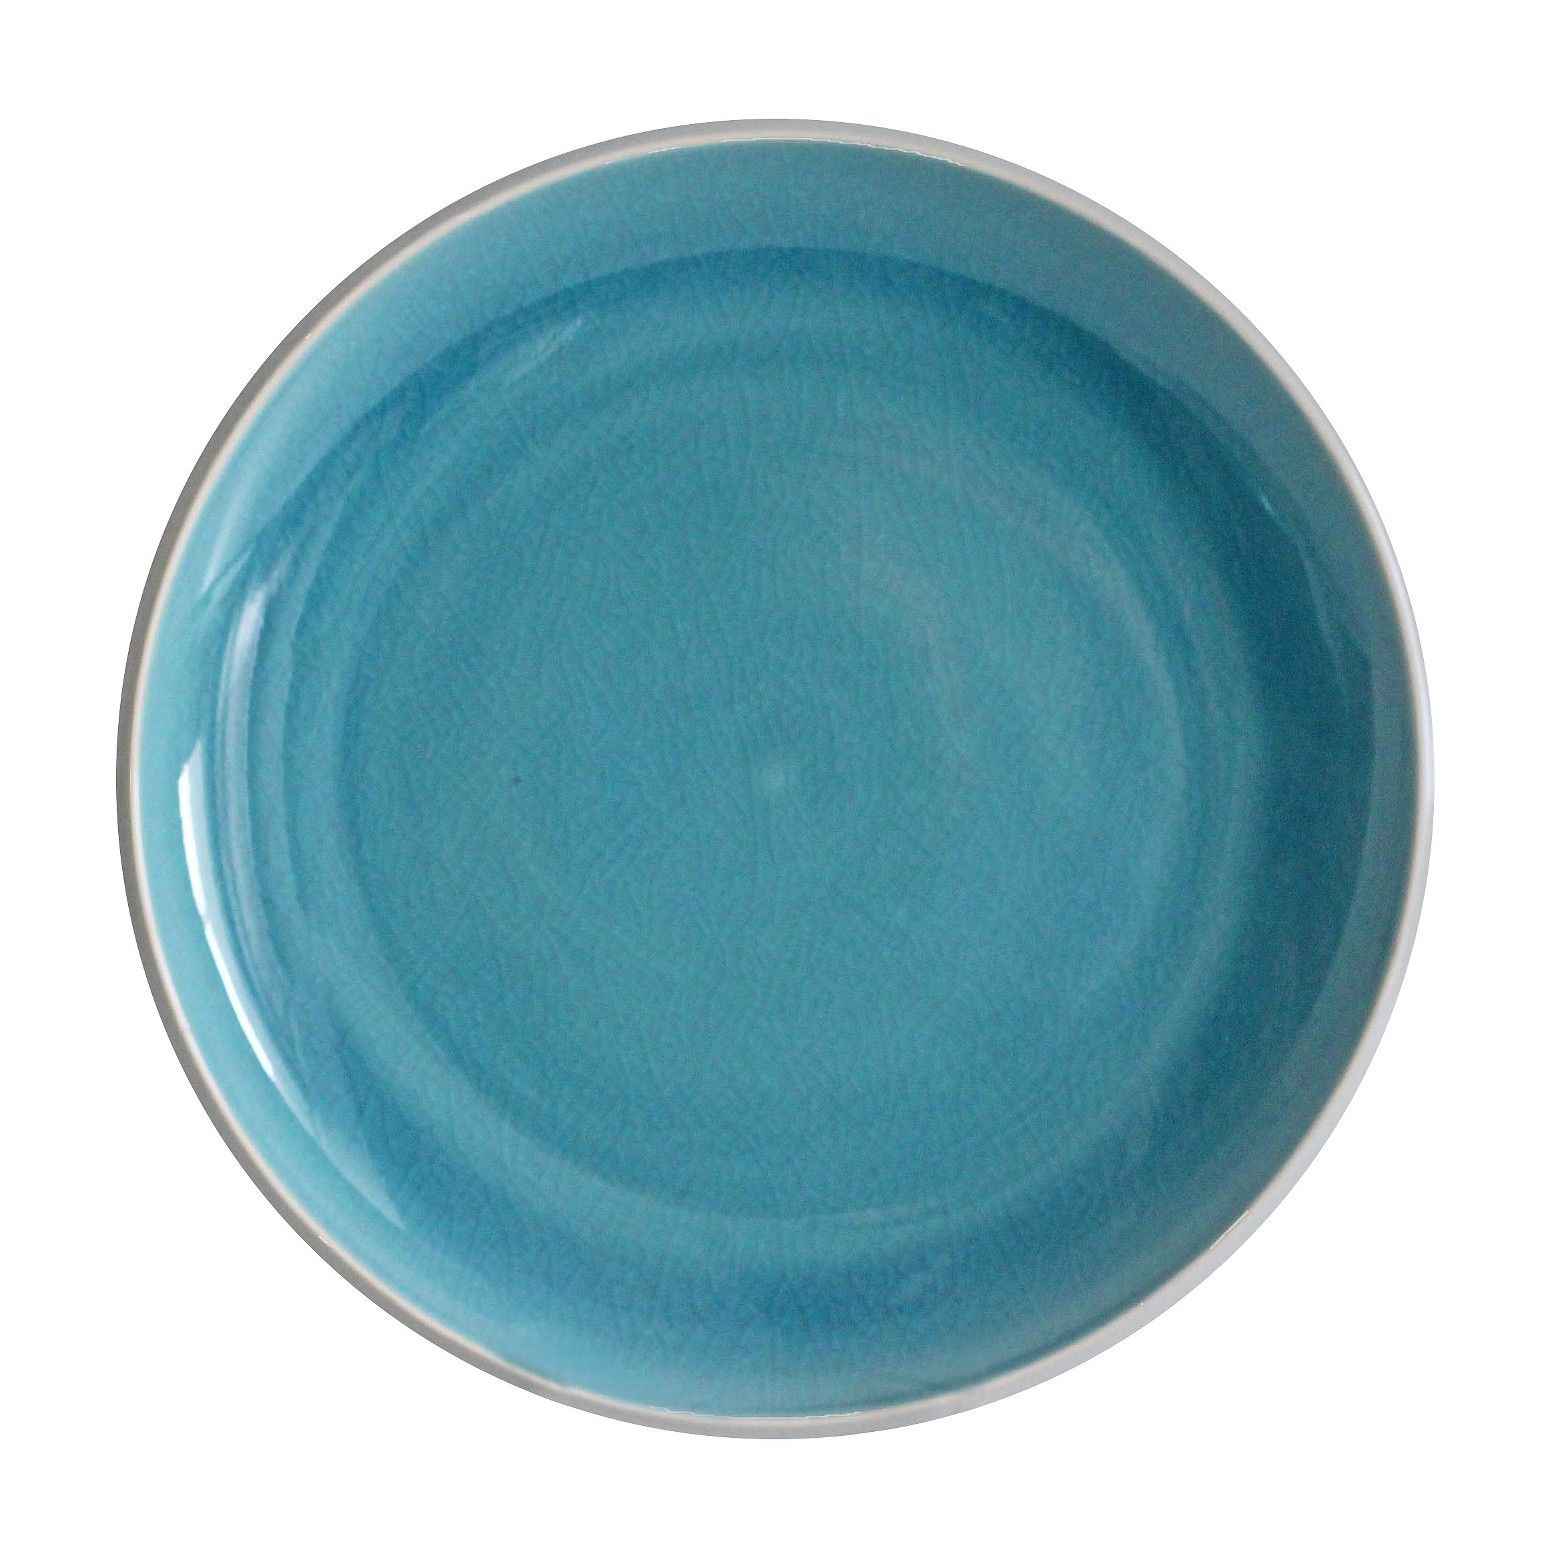 This Portel Teal dinner plate in a cheery shade of teal will provide a pop of color your table. Dishwasher and microwave safe.  sc 1 st  Pinterest & Portel Teal Dinner Plate 10in Stoneware - Threshold | Teal dinner ...